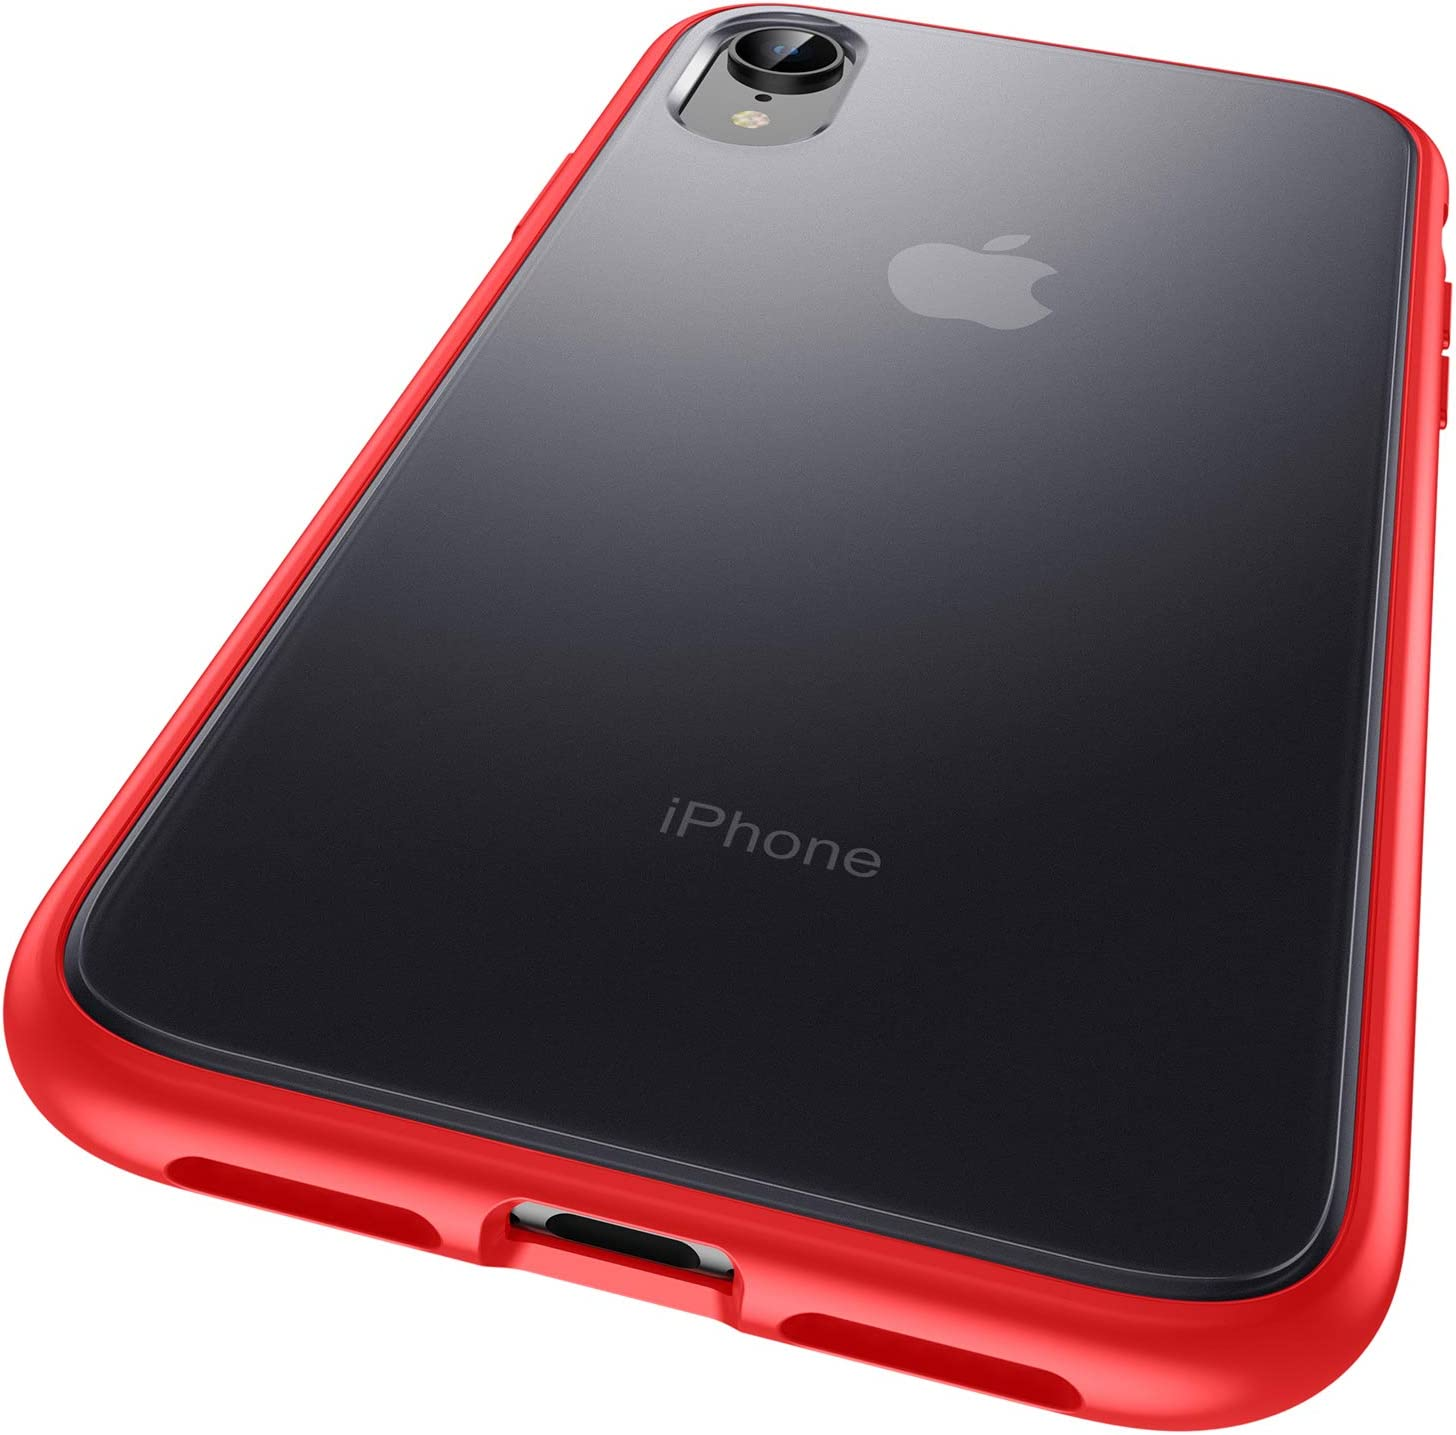 """Meifigno Magic Series iPhone XR Case, [Certified Military Protection][Agile Button], Translucent Matte PC + Soft Edges, Shockproof Protective Half Clear Phone Cover Case for Apple iPhone XR 6.1"""", Red"""